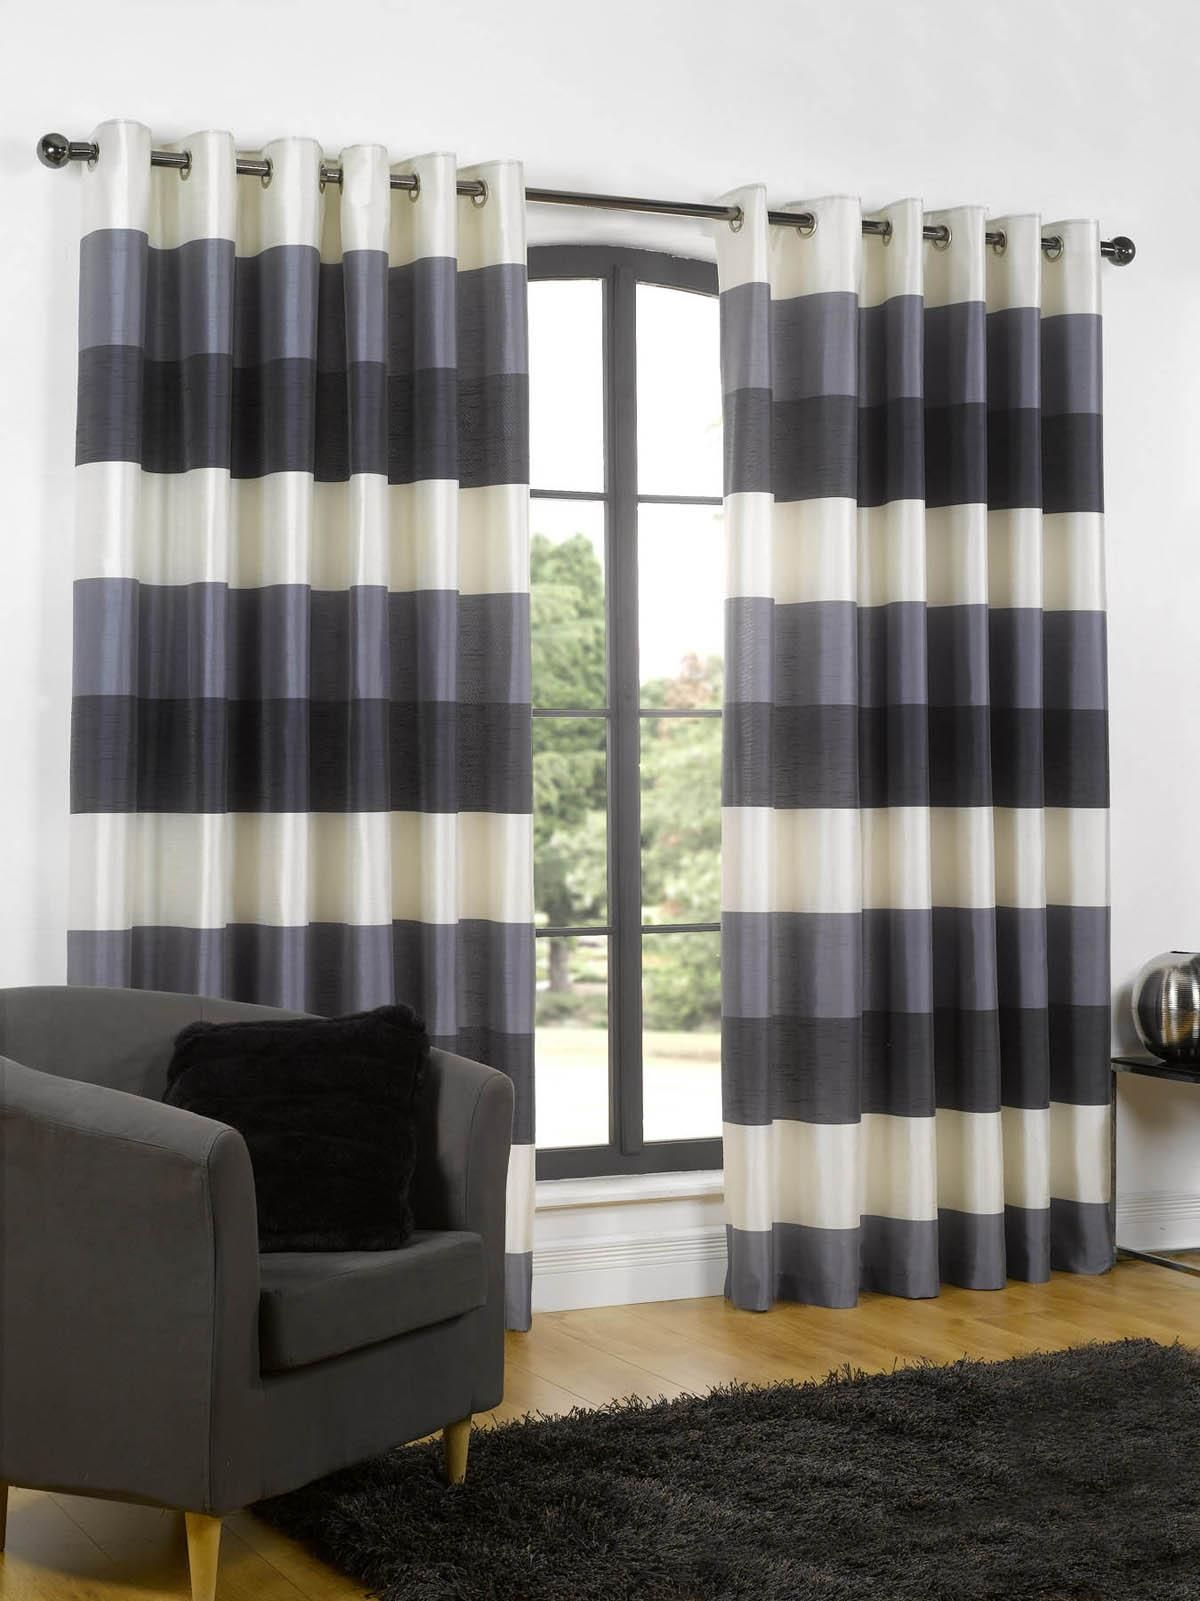 Modern Wide Horizontal Stripes Of Tonal Navy And Cream Rio Ready Made Eyelet Lined Curtains In Polyester